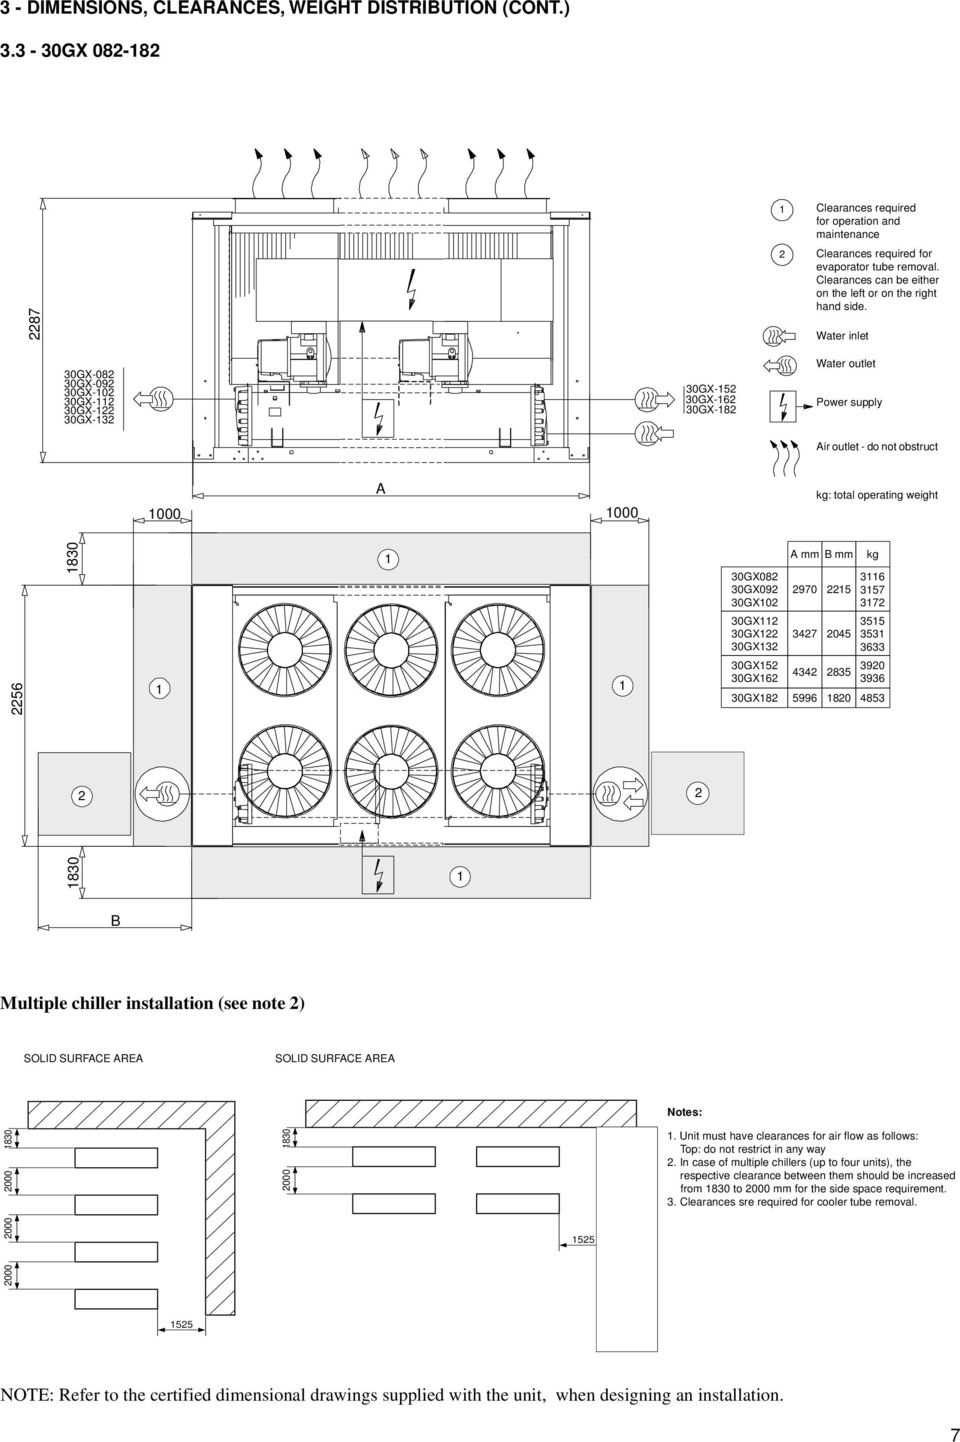 Hx Chiller 300 Wiring Diagram Diagrams Schematics Refrigeration Plants 30hxc Gx Screw Compressor Water Cooled Liquid Chillers And Air Inlet 30gx 082 092 102 112